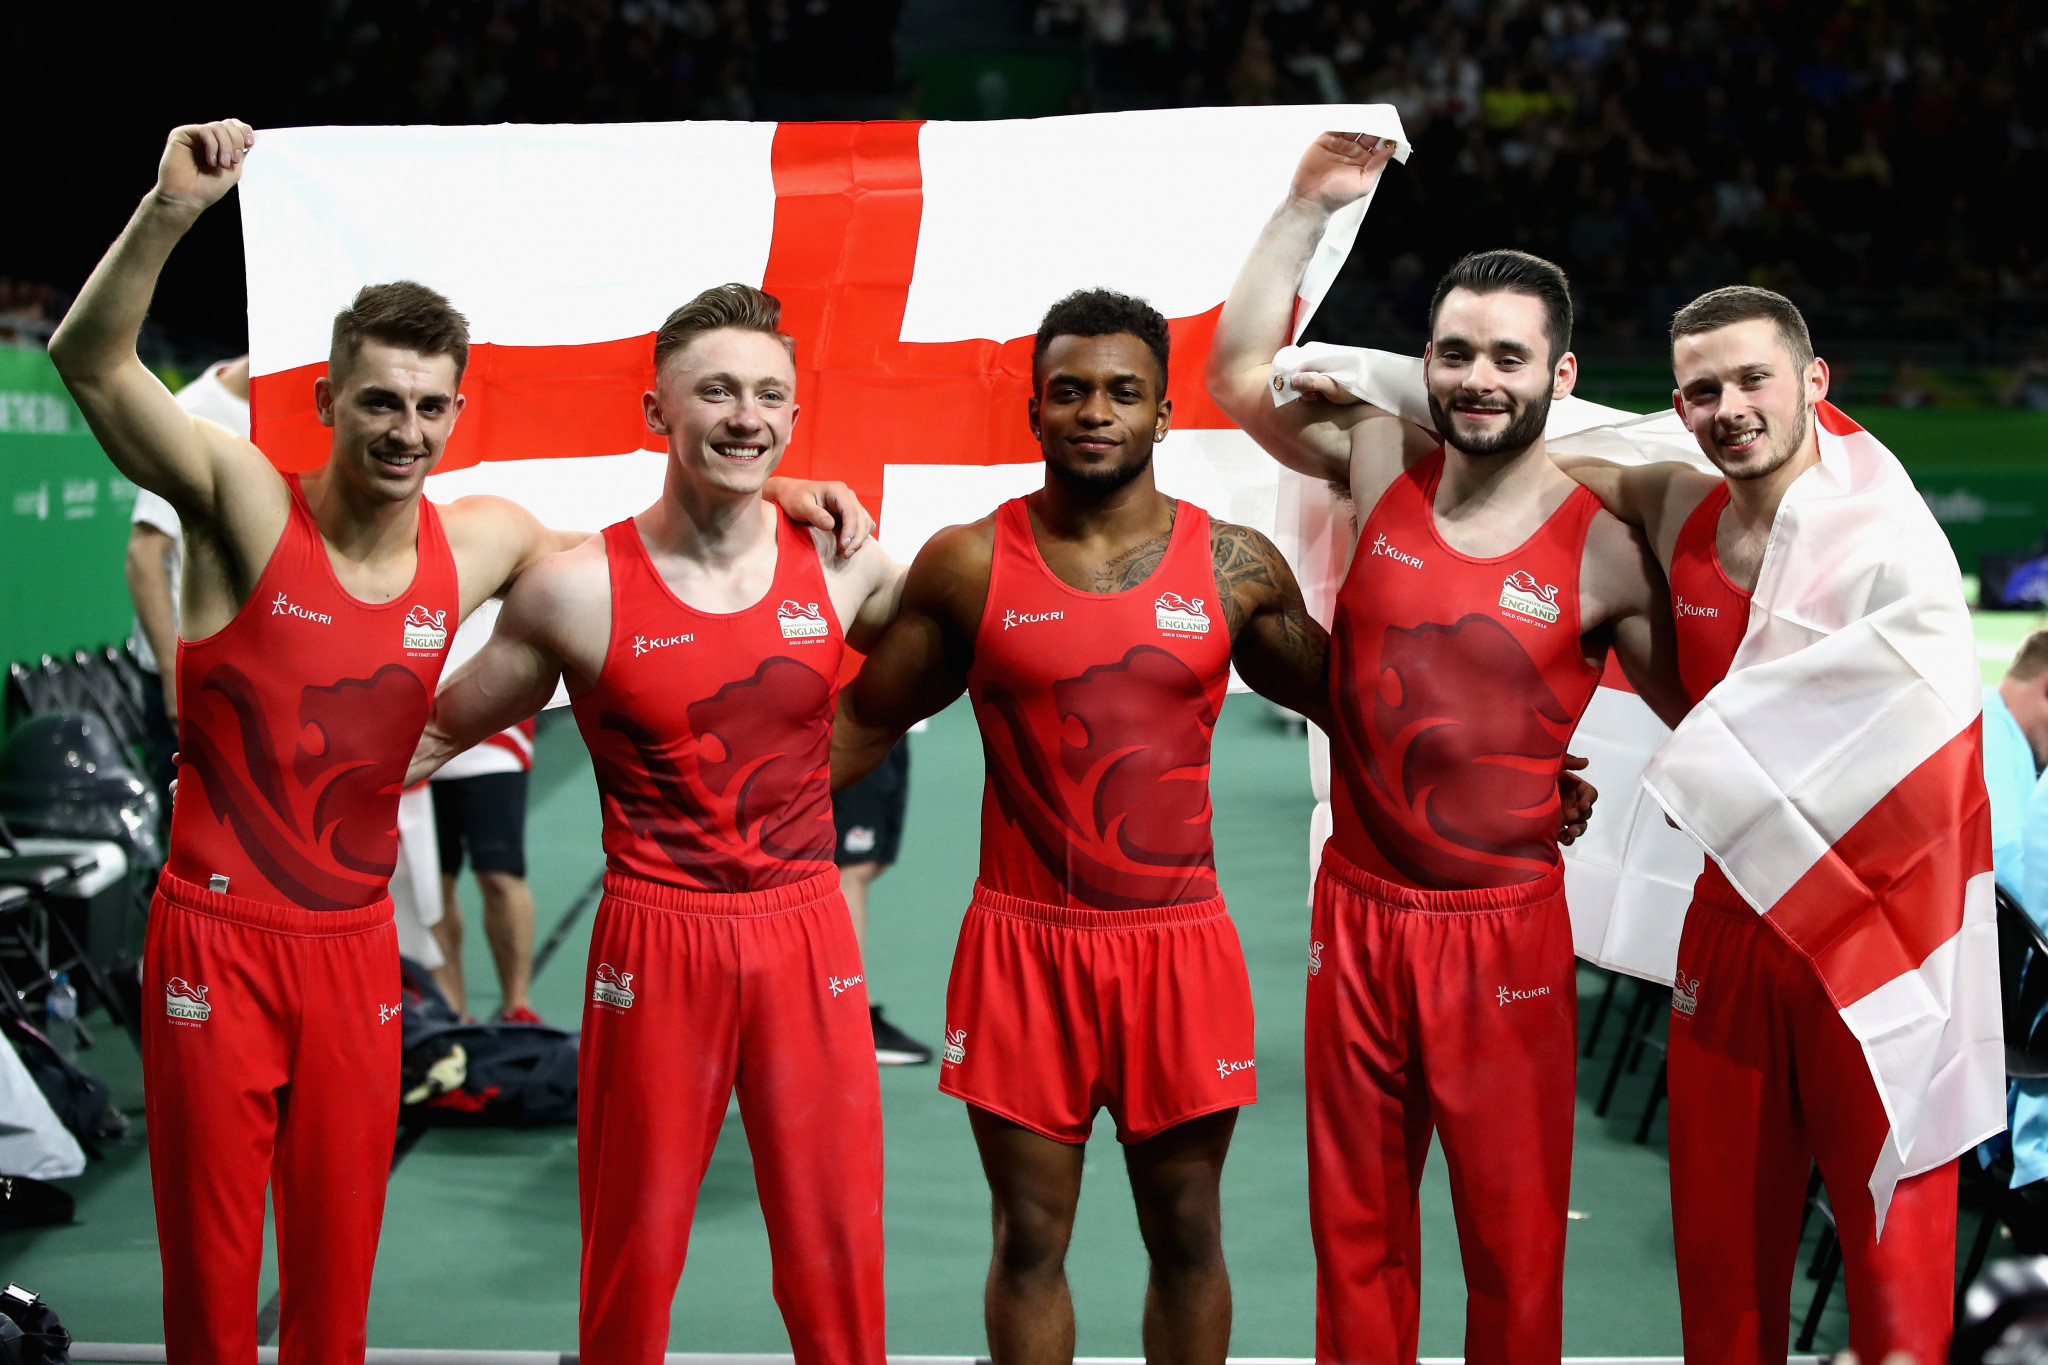 England clinch men's team gold as gymnastics begins at Gold Coast 2018